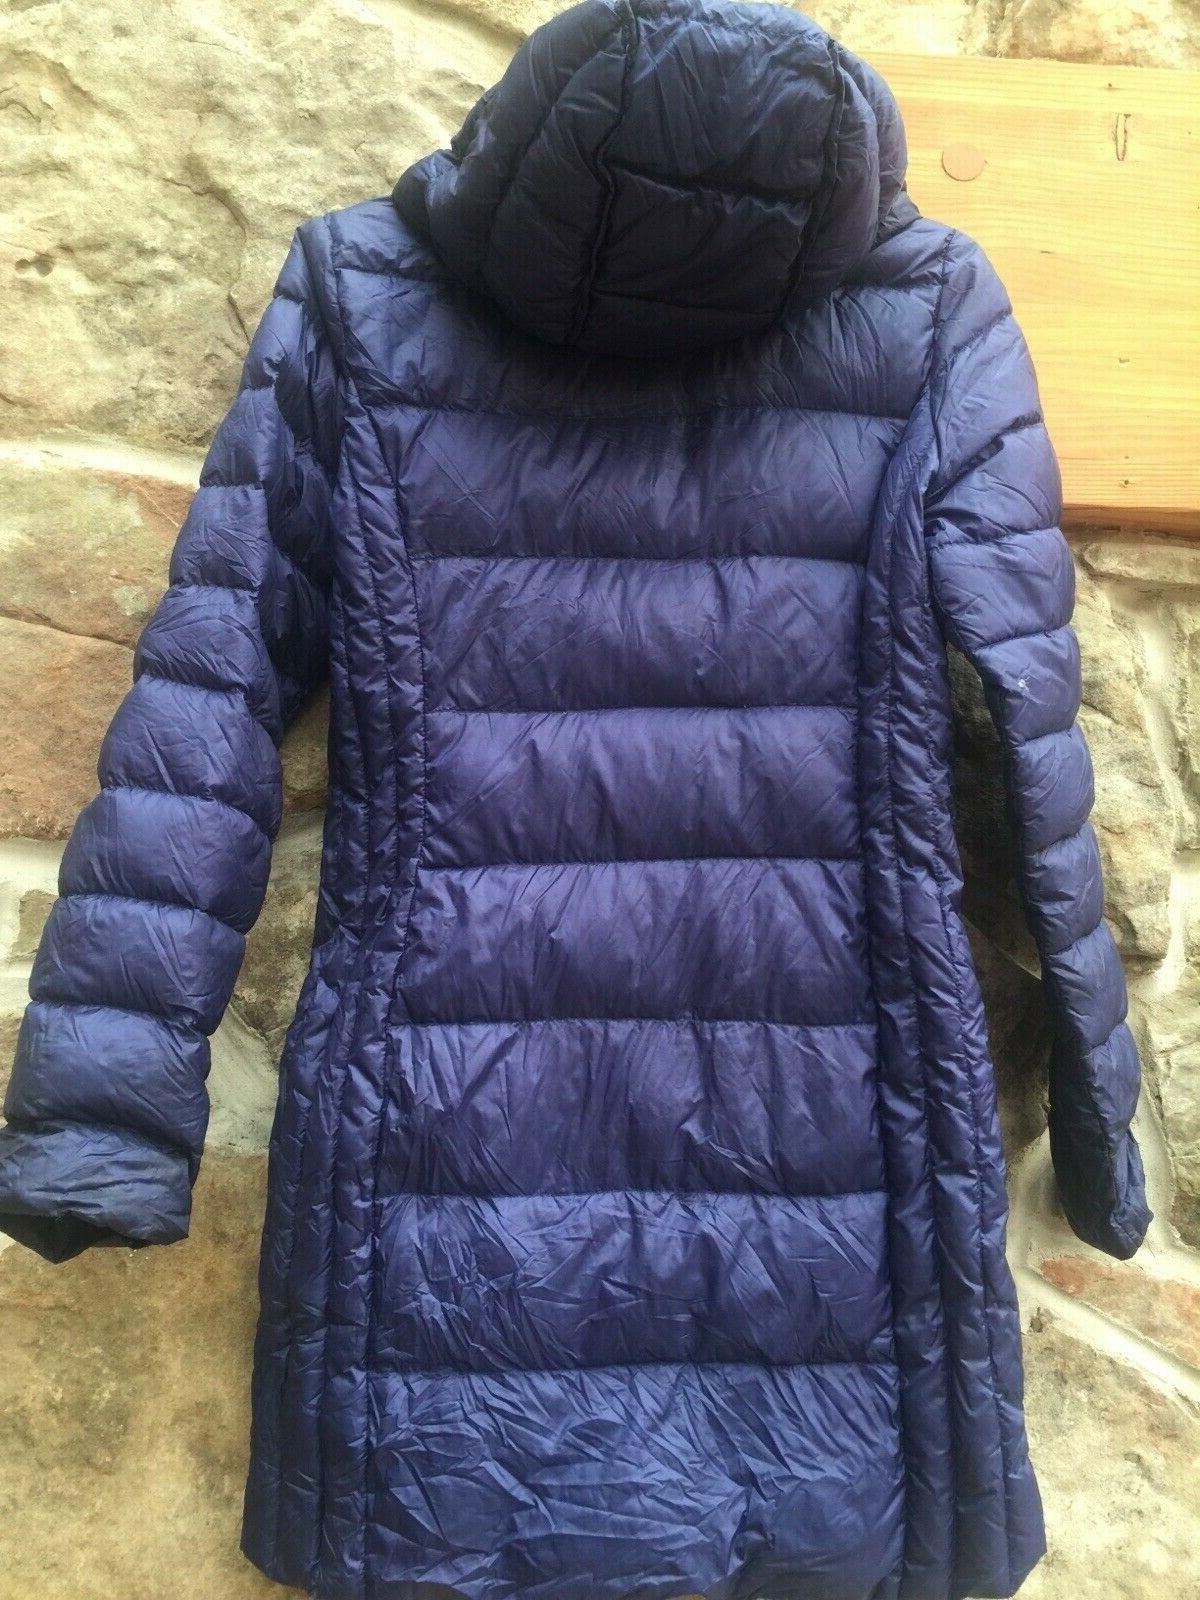 32 Degrees Heat Down Jacket Sleeve Zip Size S Small